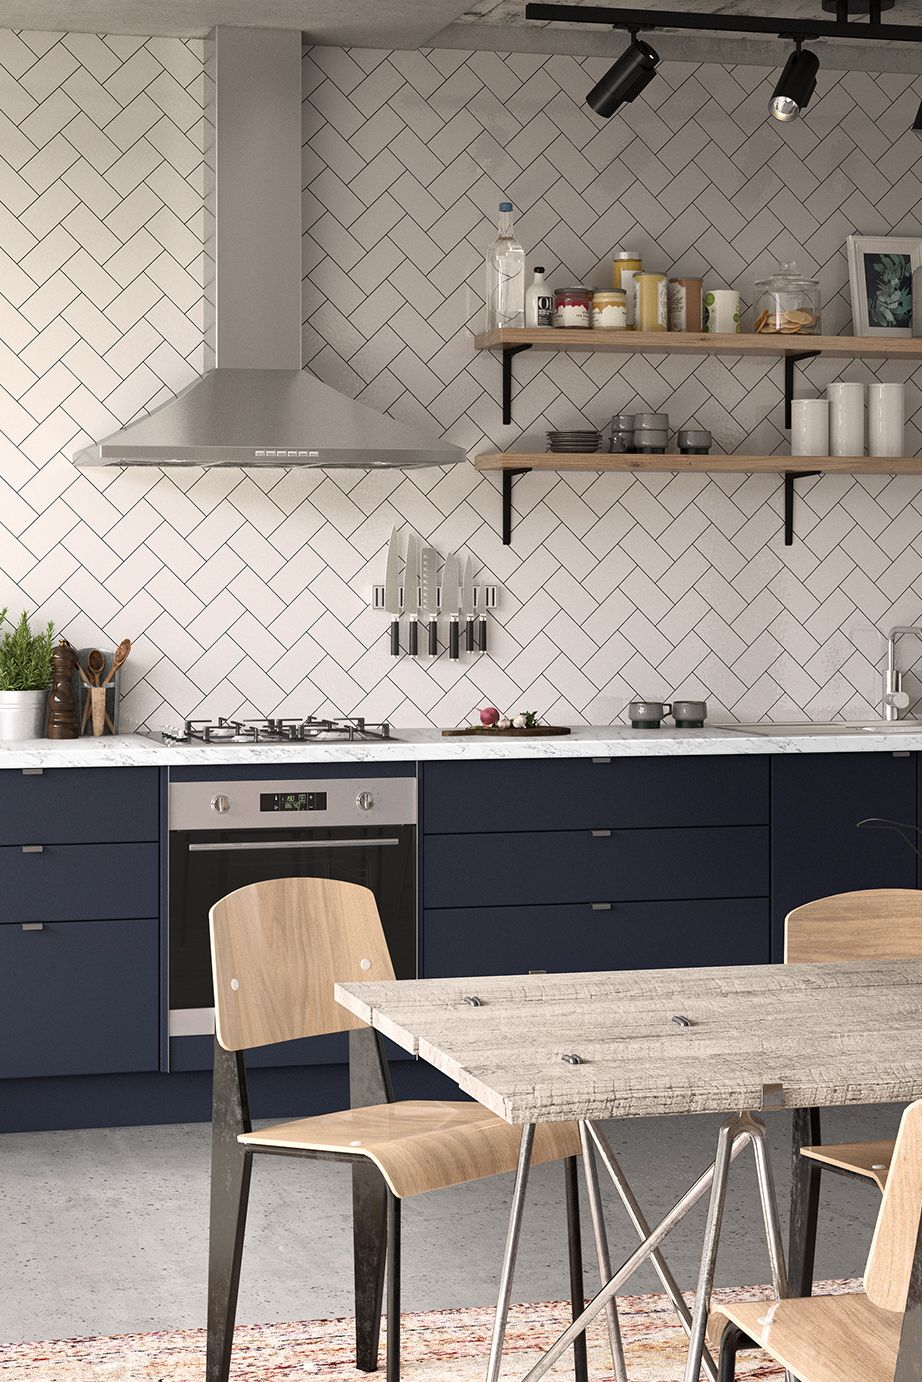 Industry Blue kitchen inspiration and ideas kaboodle